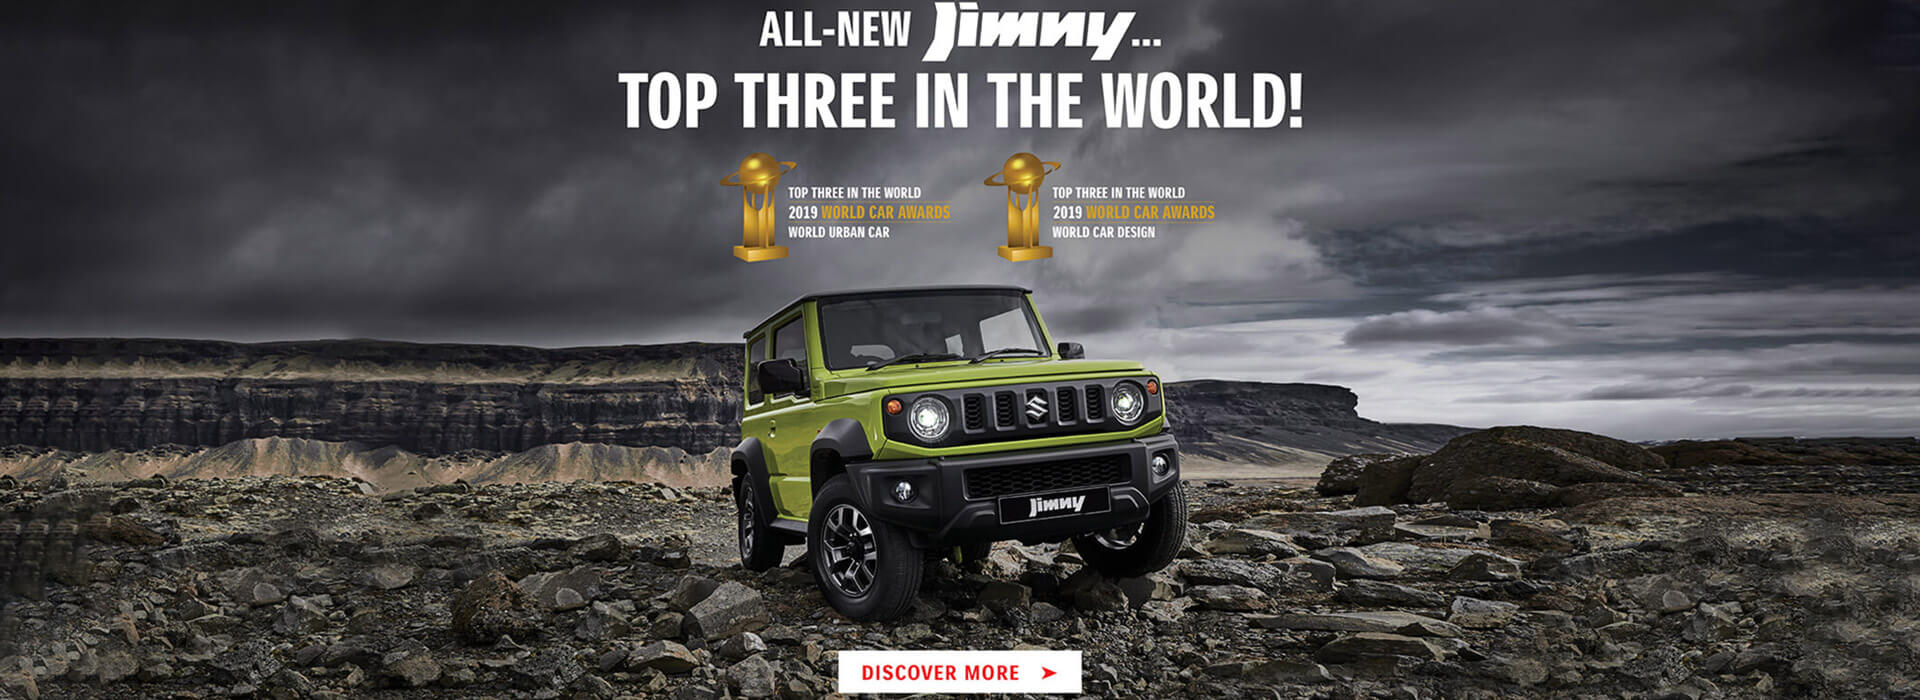 All New Jimny Video